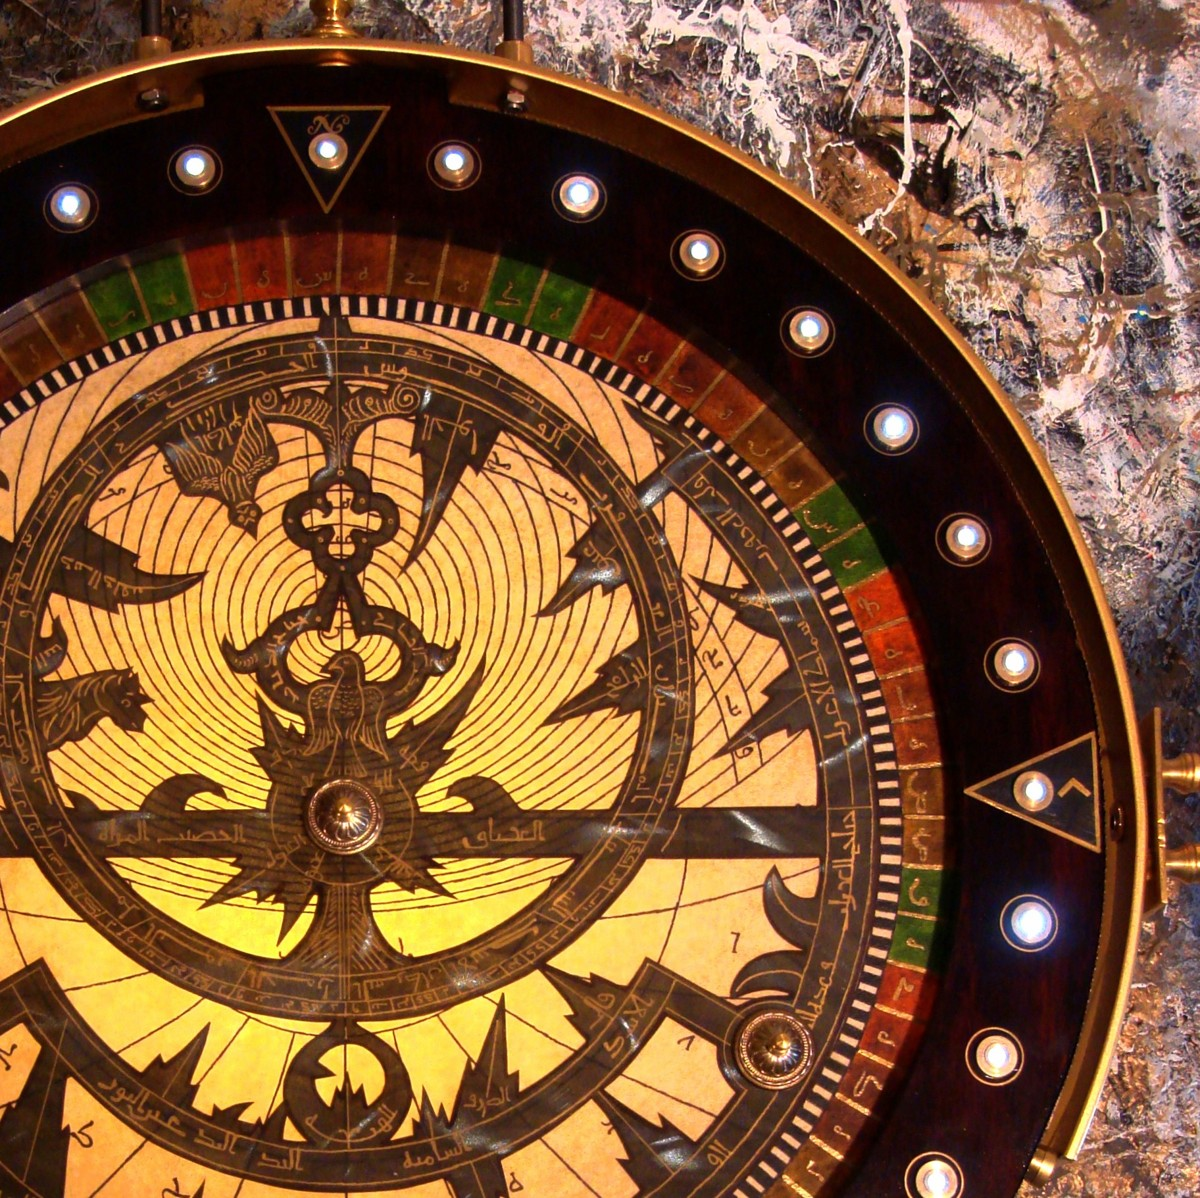 Shiva Mandala Iluminated Astrolabe (large view)